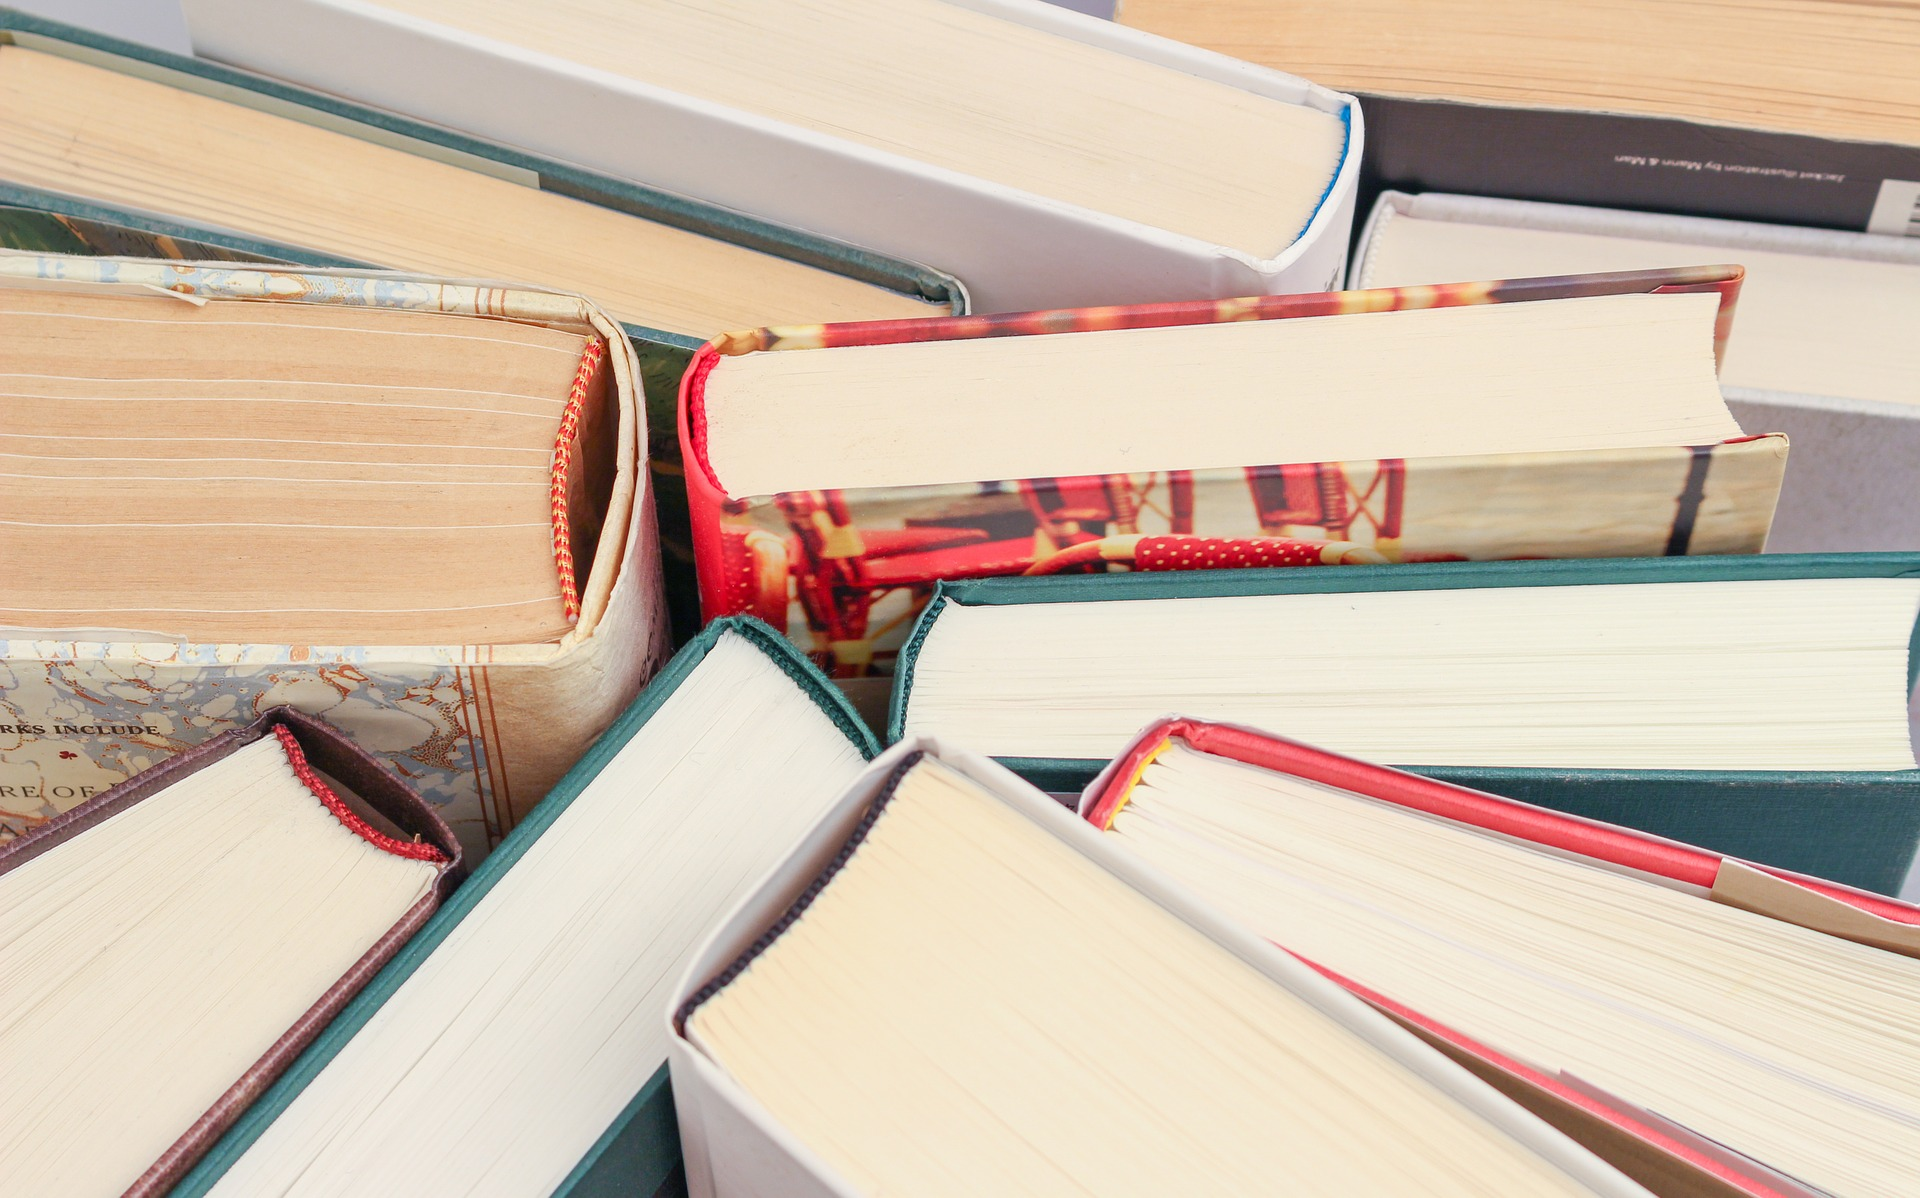 The Congregation that Reads Together: A Book Basket Enhances Adult Education